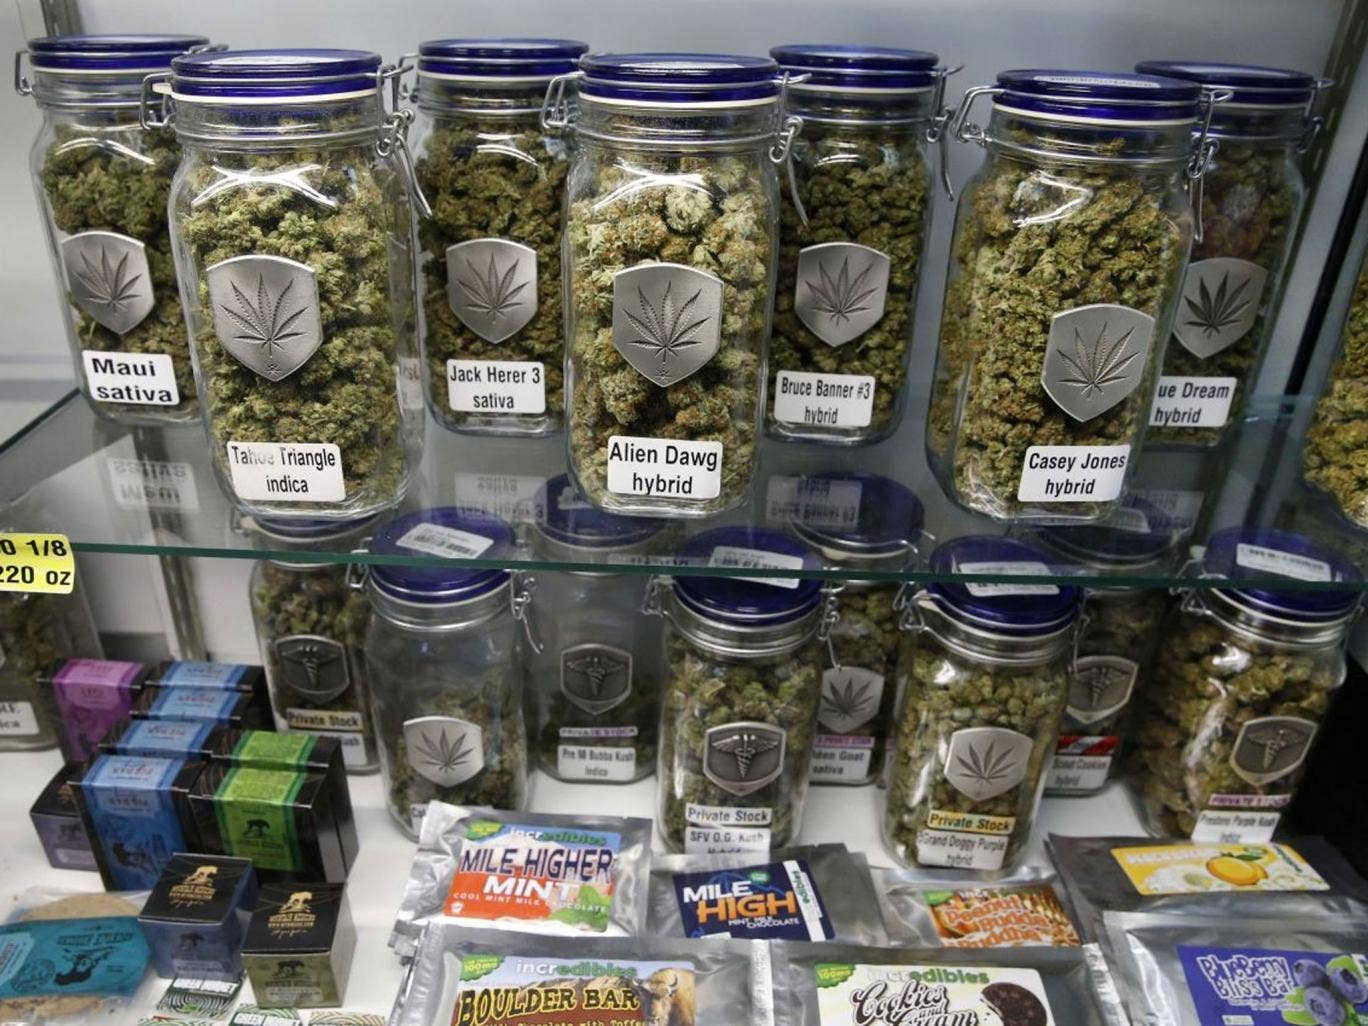 In this Dec. 27, 2013 photo, marijuana and cannabis-infused products are displayed for sale at Medicine Man marijuana dispensary, which is to open as a recreational retail outlet at the start of 2014, in Denver. Colorado is making final preparations for m